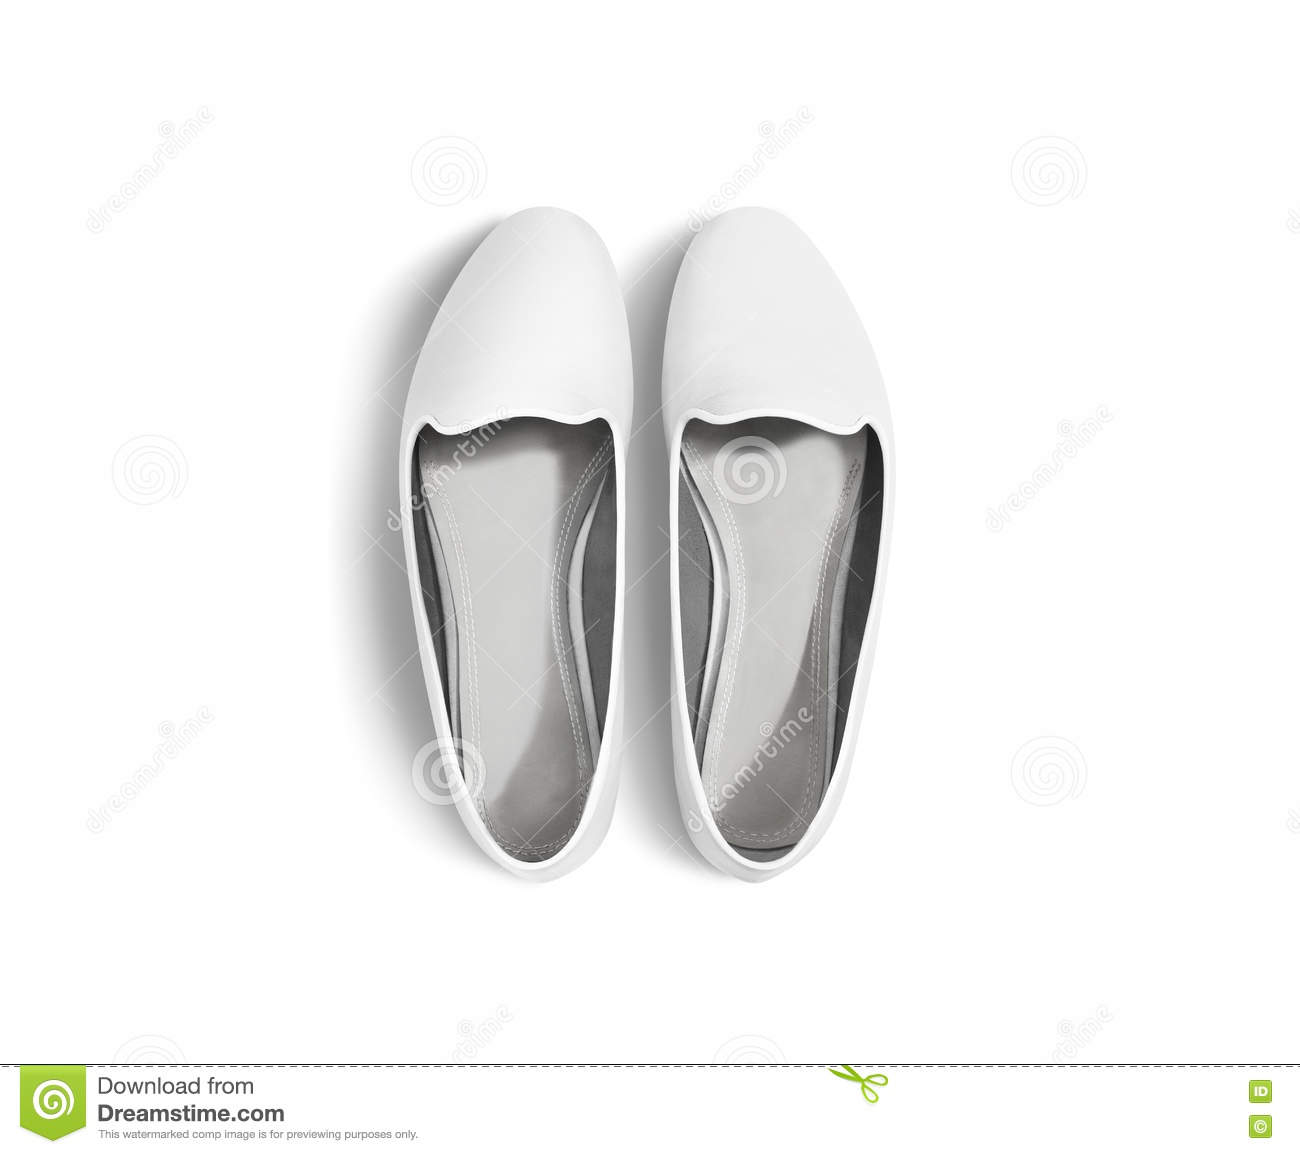 White blank women shoes mockup isolated, top view, clipping path.